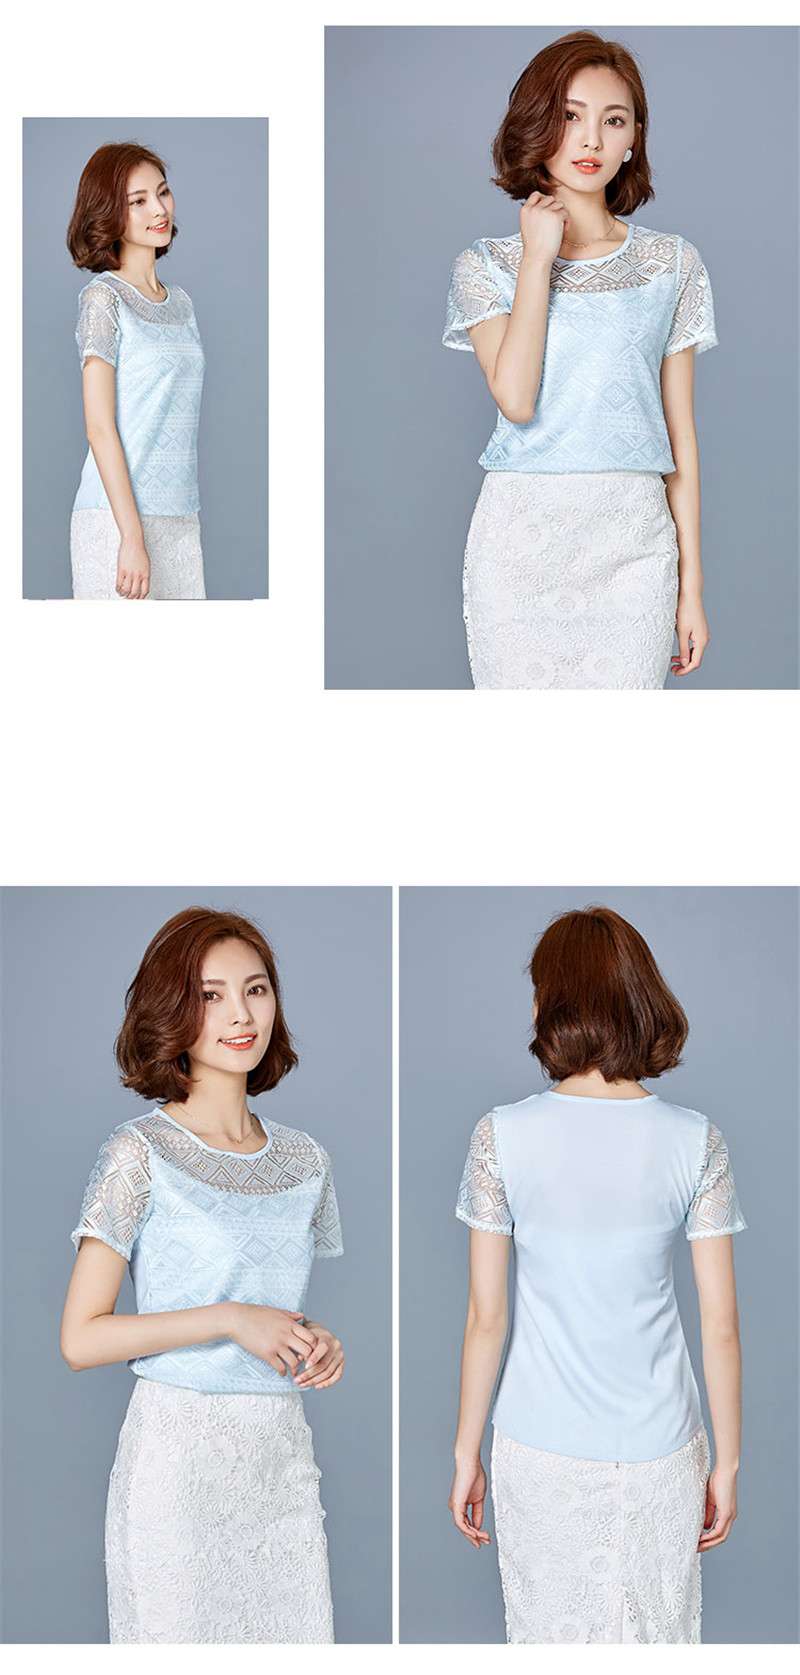 HTB1nhM3PpXXXXbuXFXXq6xXFXXX7 - New women tops lace chiffon blouse korean office female clothing